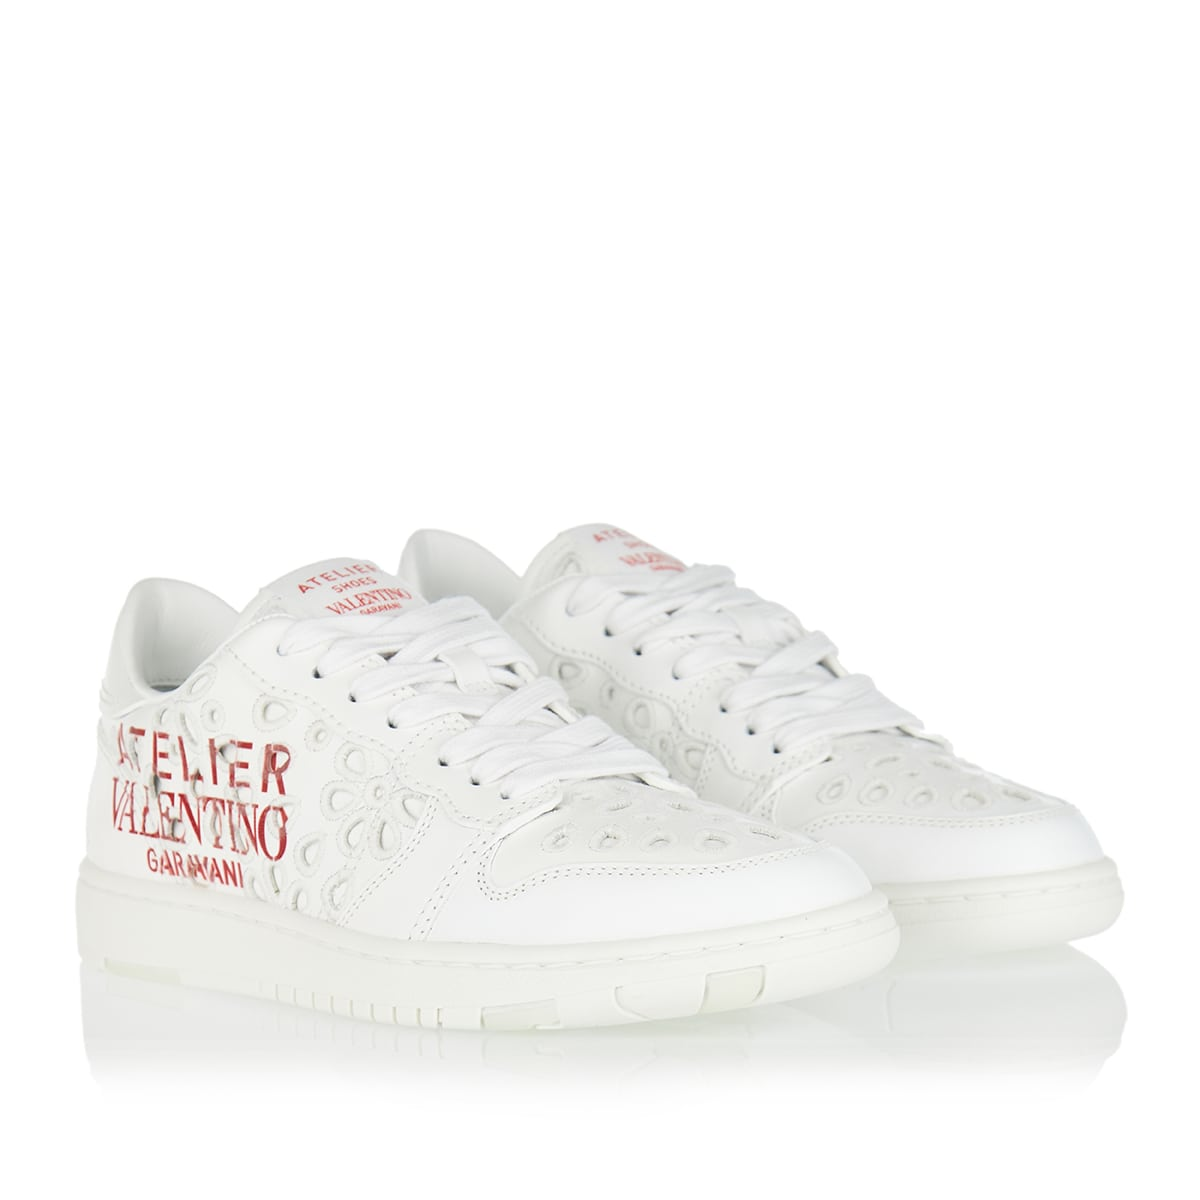 Atelier Shoes 08 San Gallo Edition sneakers